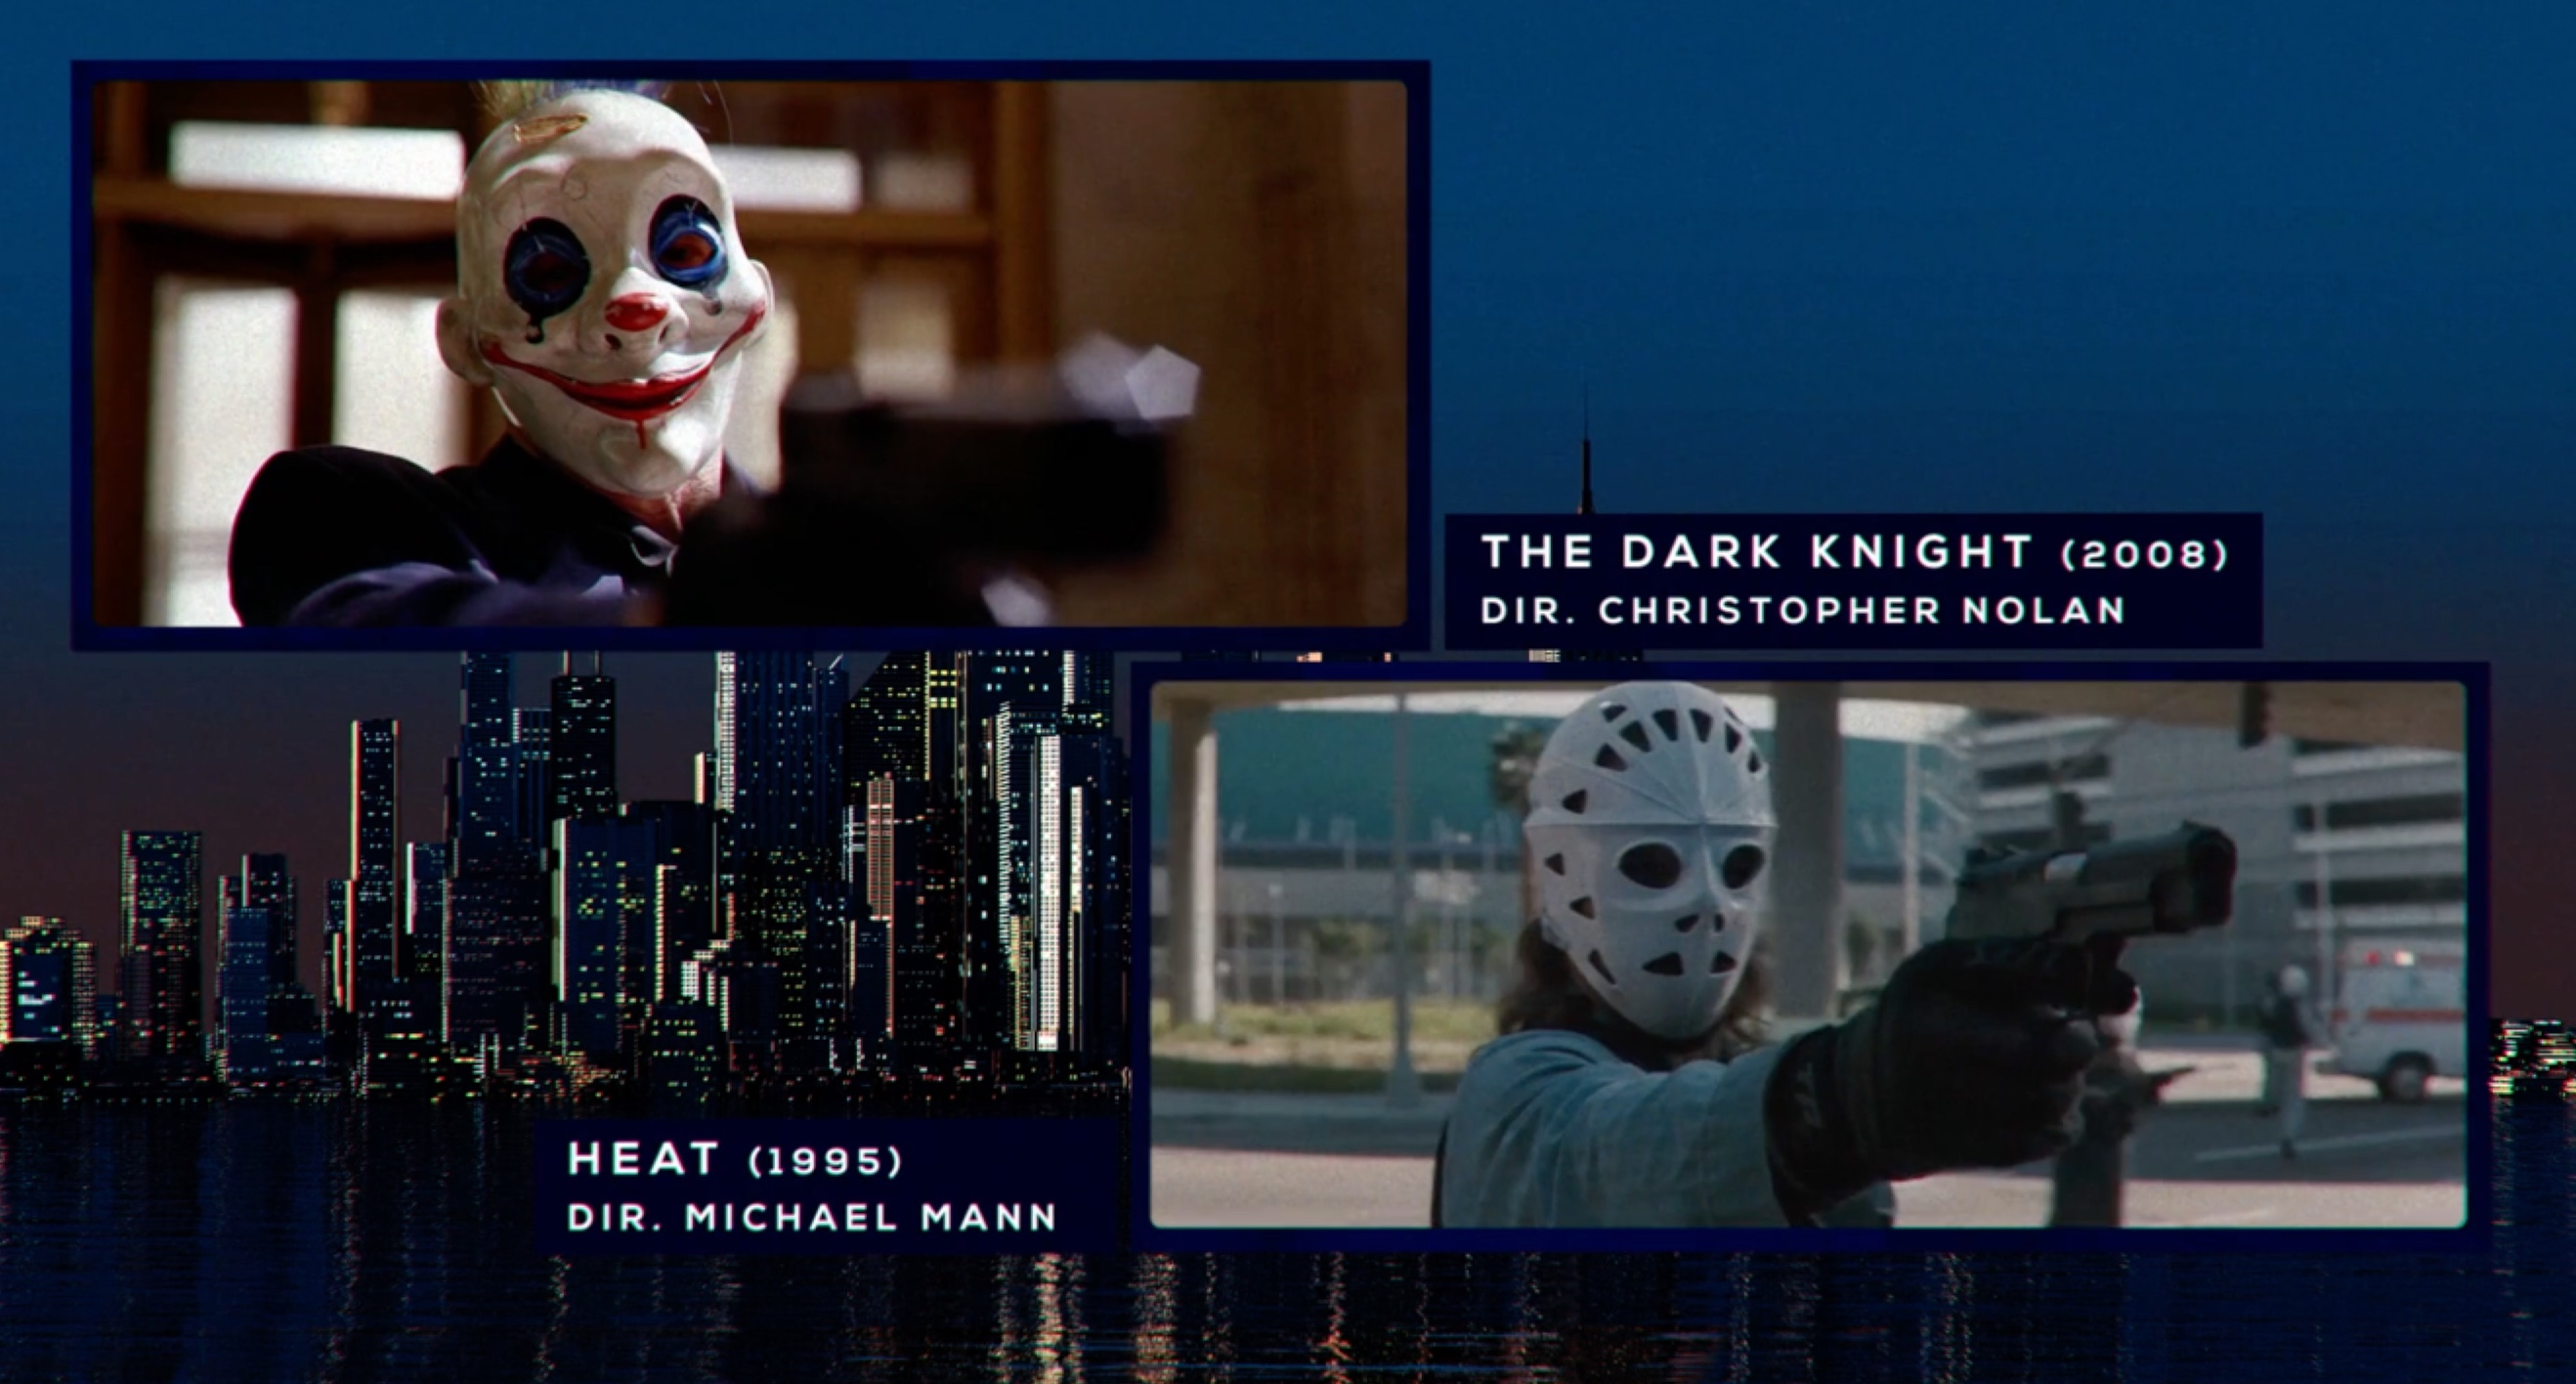 Essay On Stopping By Woods On A Snowy Evening Christopher Nolans The Dark Knight Michael Mann Influences Explored In  Video Essay Smoke Signals Essay also Write Essay For Me Christopher Nolans The Dark Knight Michael Mann Influences Explored  Essays On Game Theory